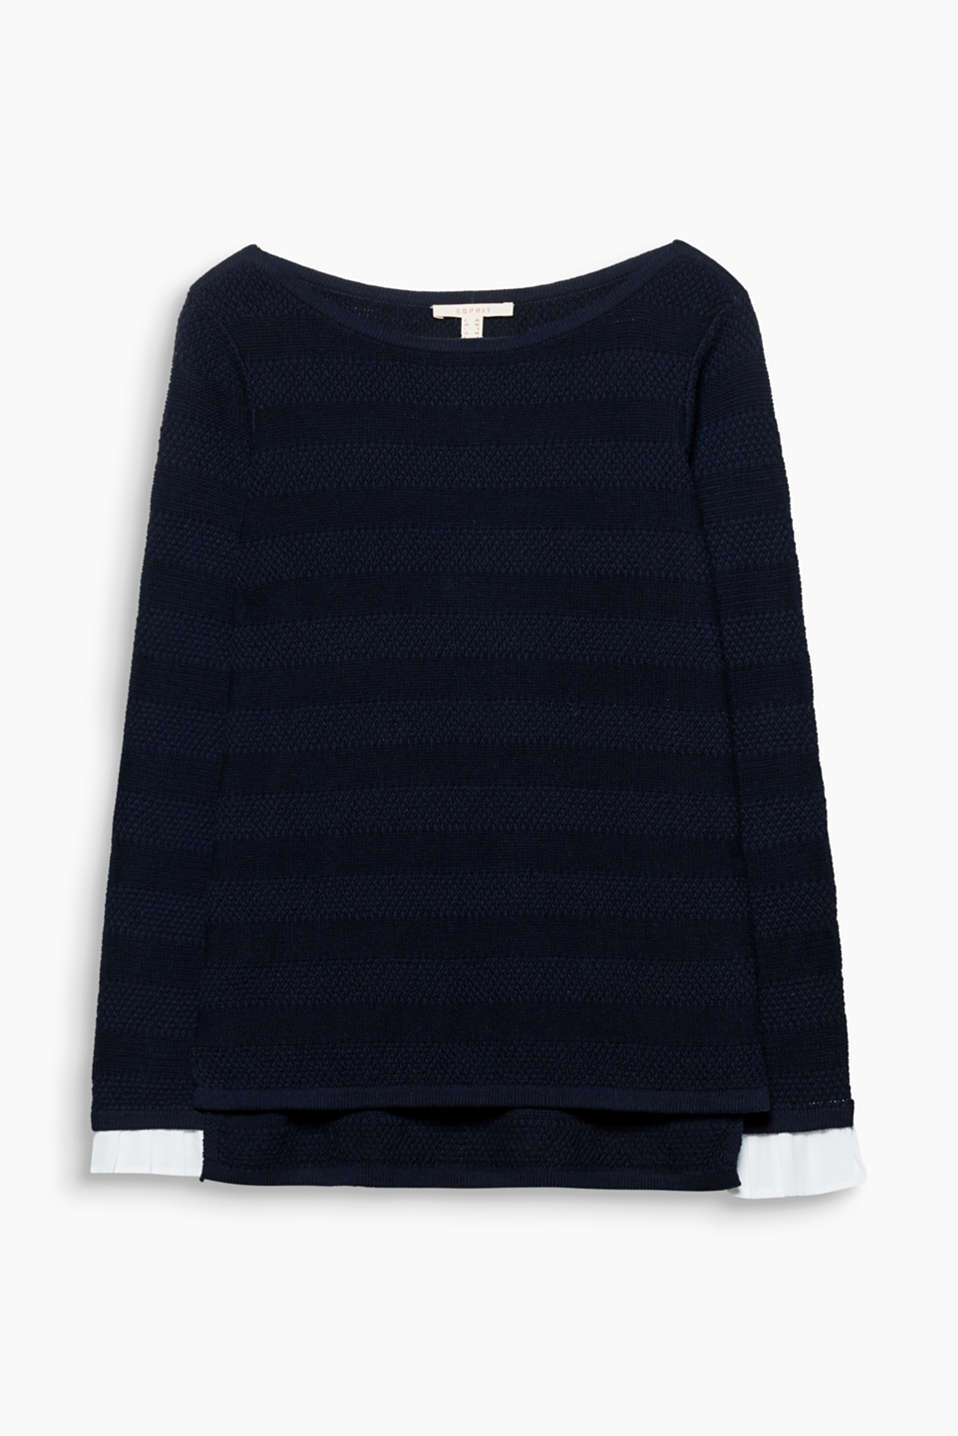 This casual cotton jumper features stripes, coloured or textured, and pleated cloth cuffs!